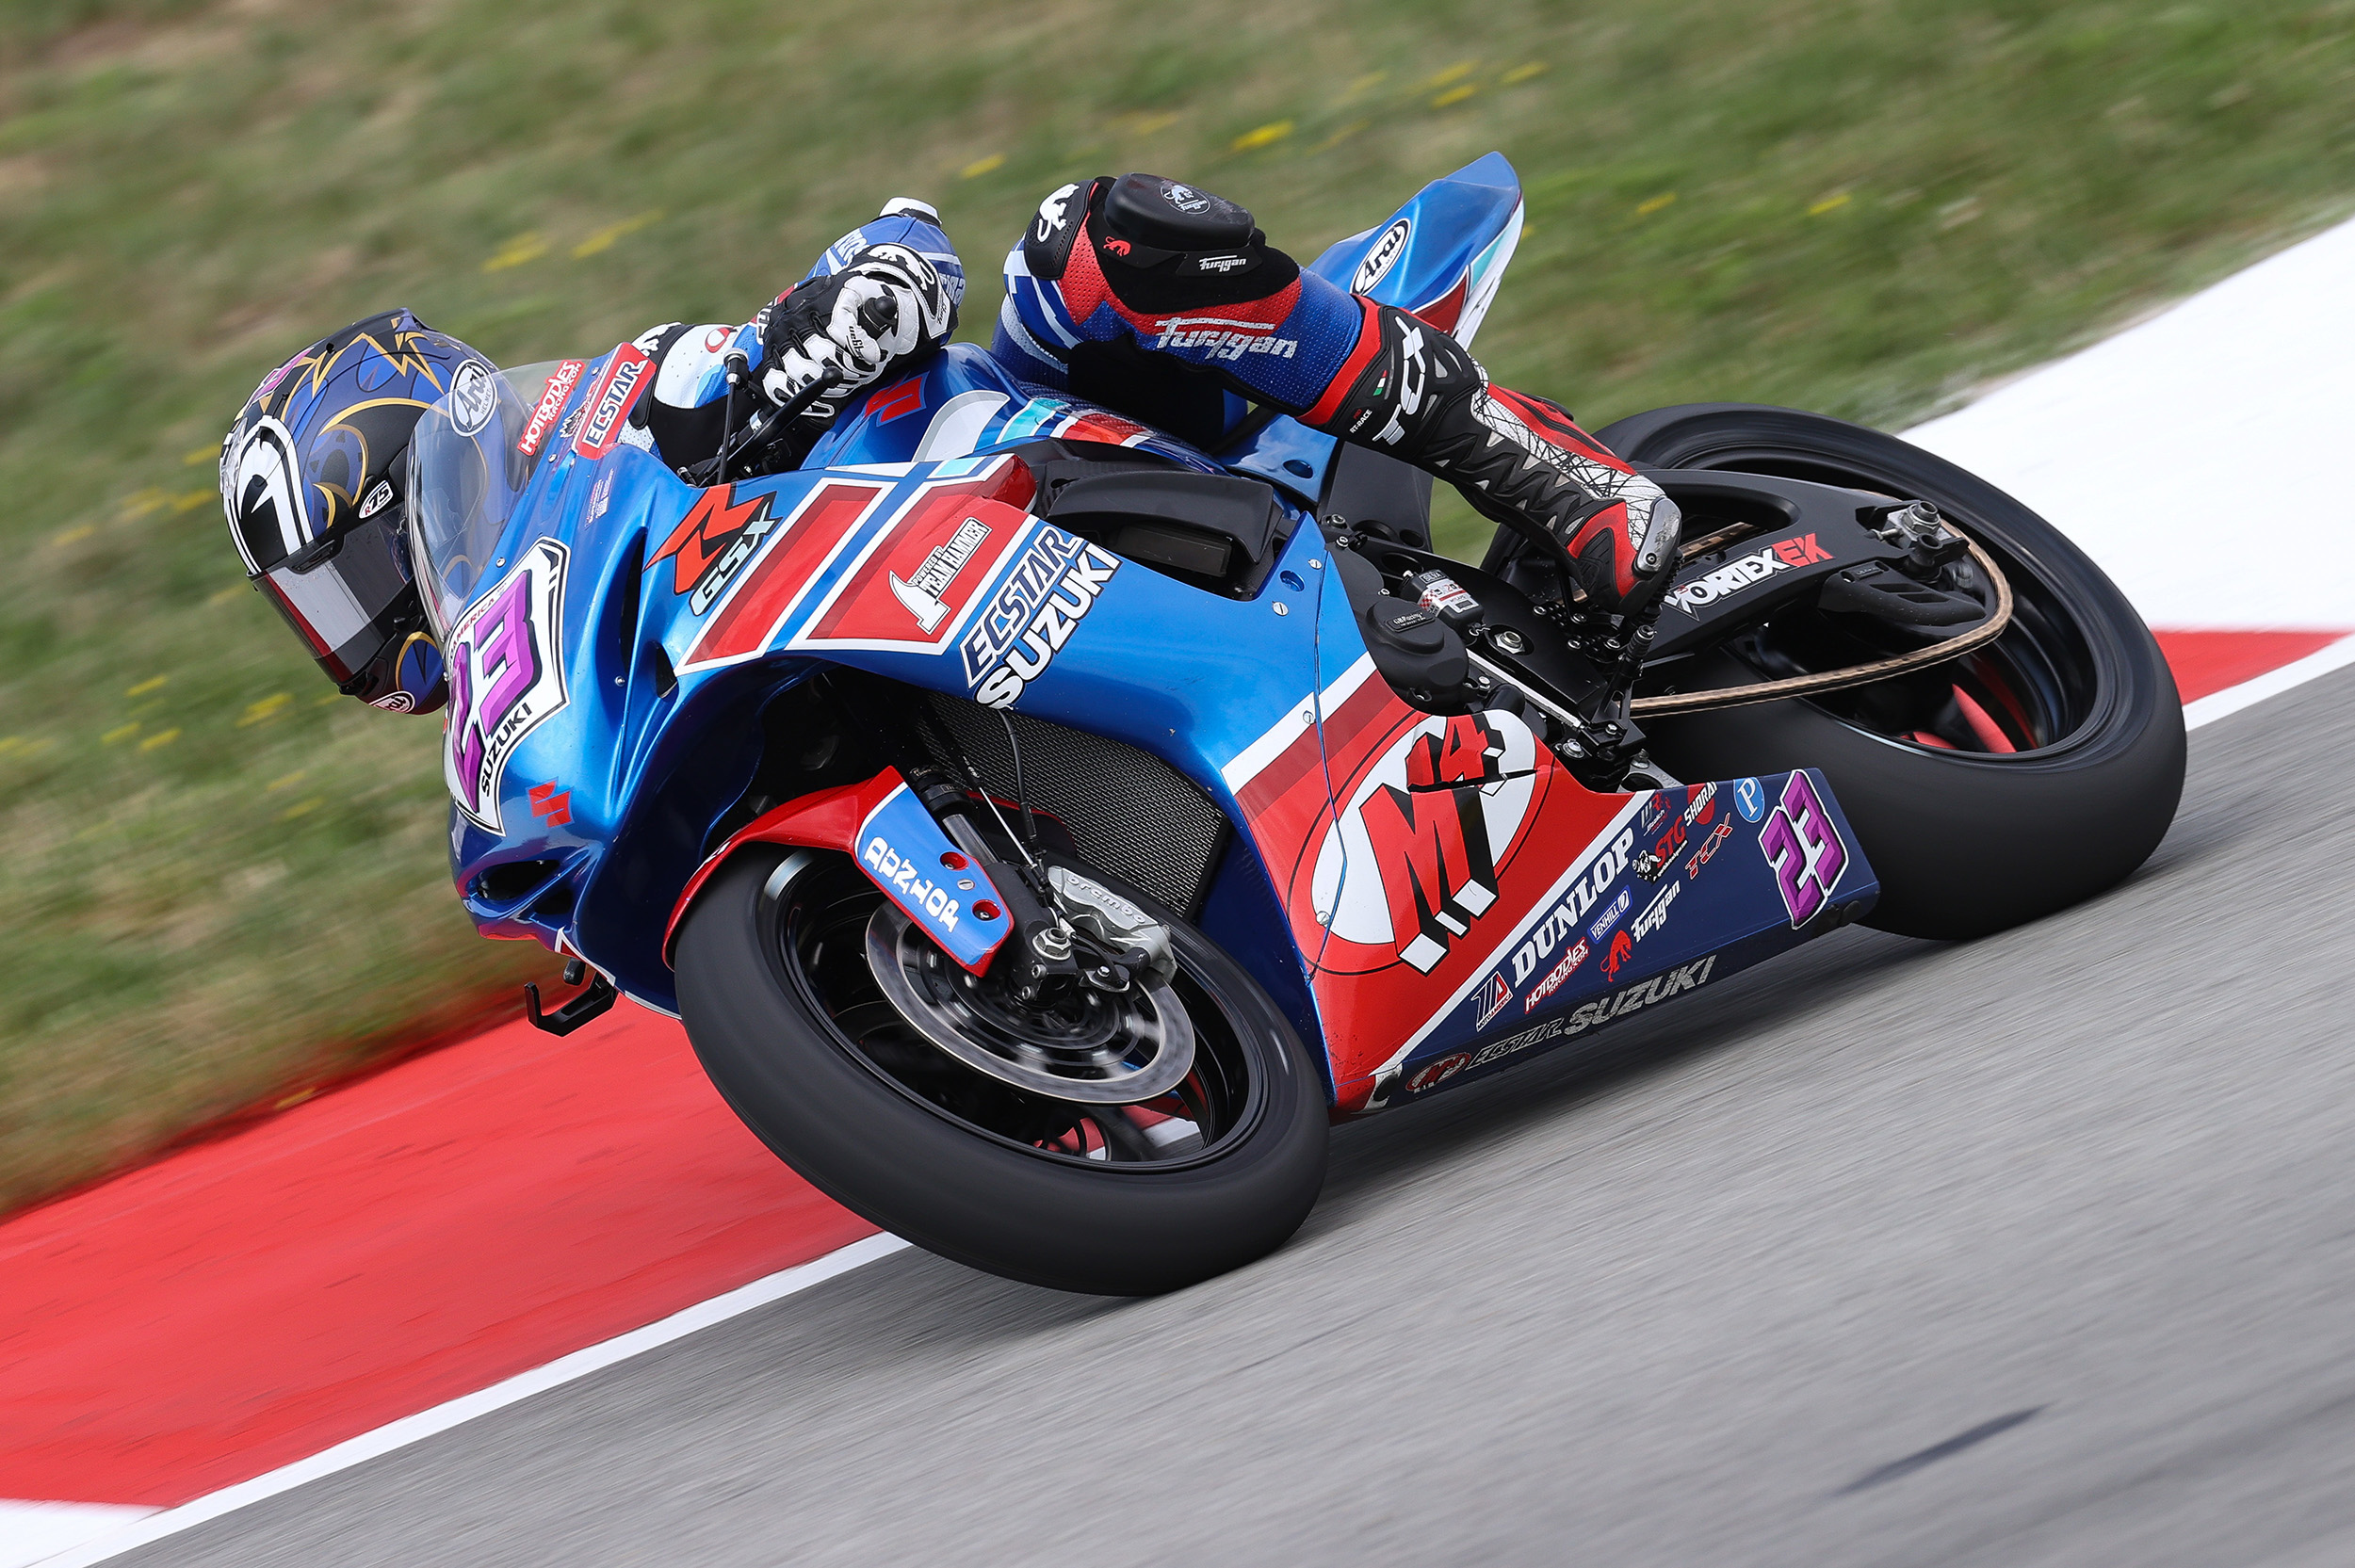 Lucas Silva (#23) continued his run of top-ten finishes in Supersport